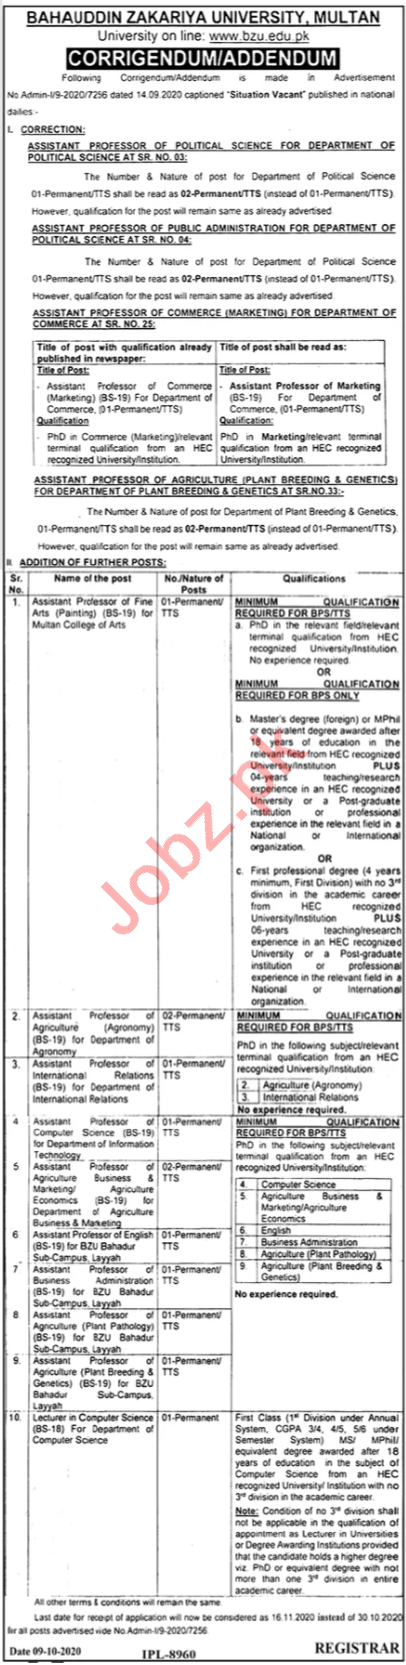 Bahauddin Zakariya University BZU Faculty Jobs 2020